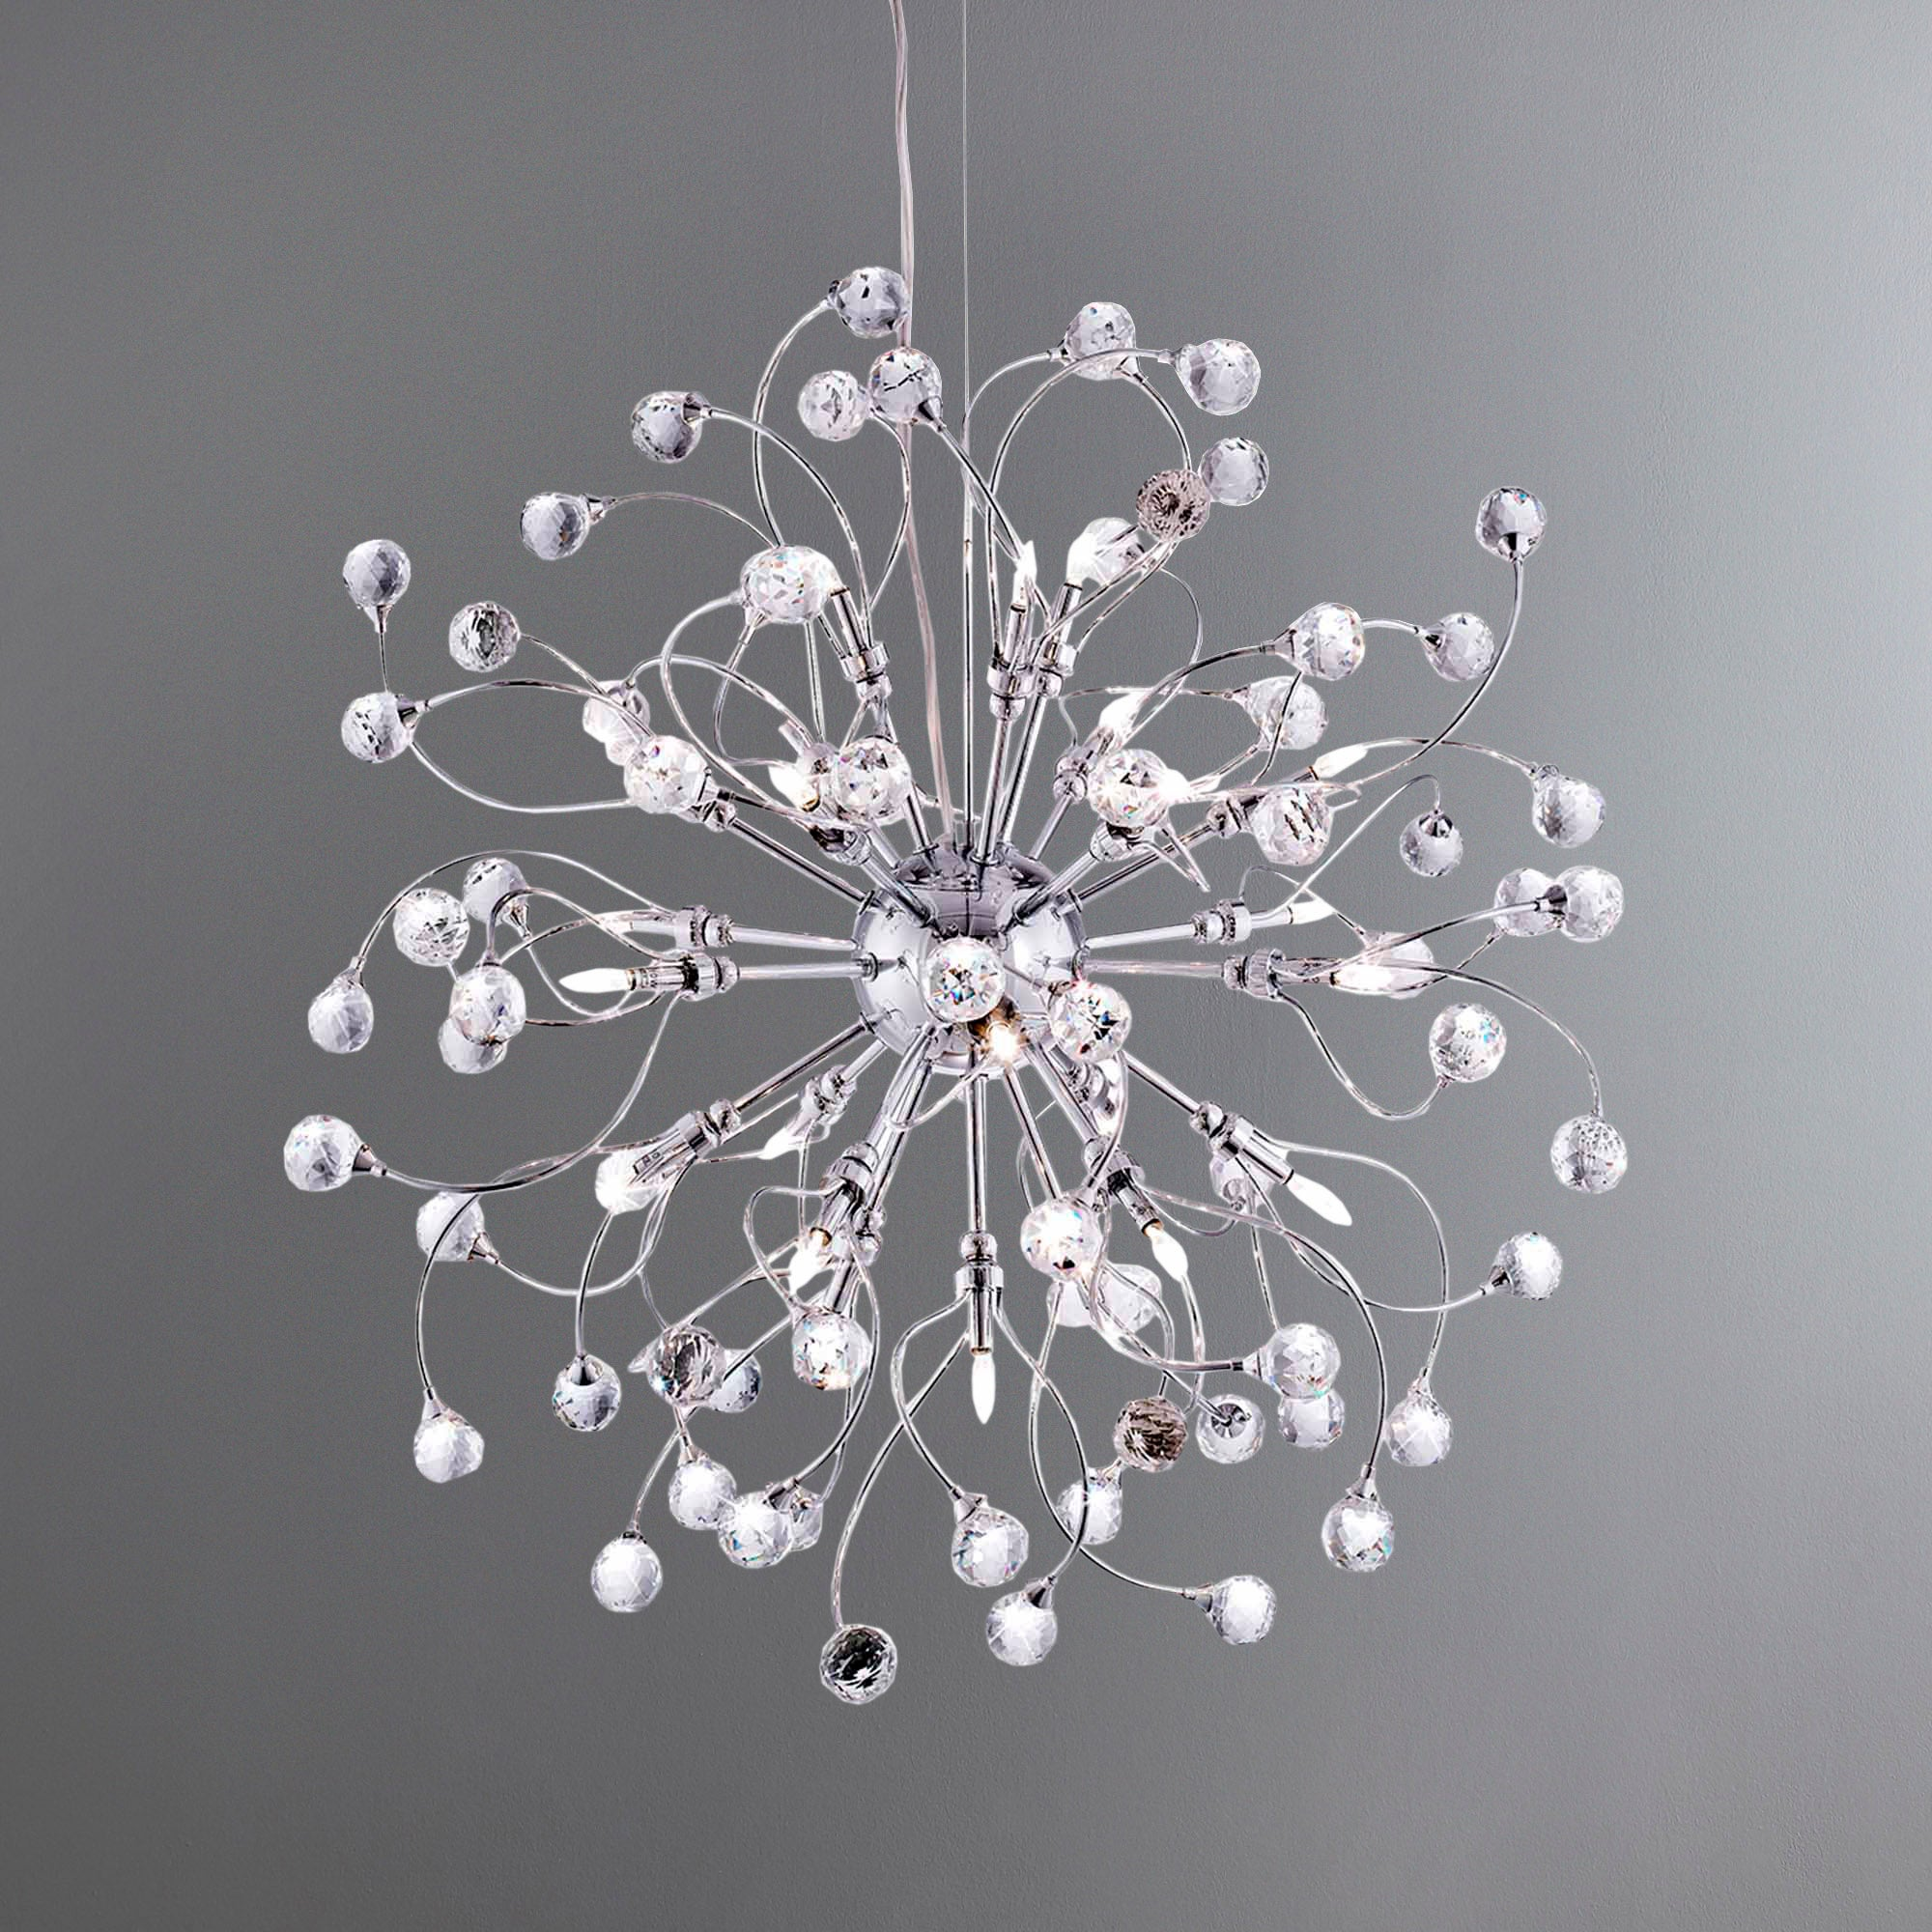 Image of 24 Light Ceiling Fitting Silver